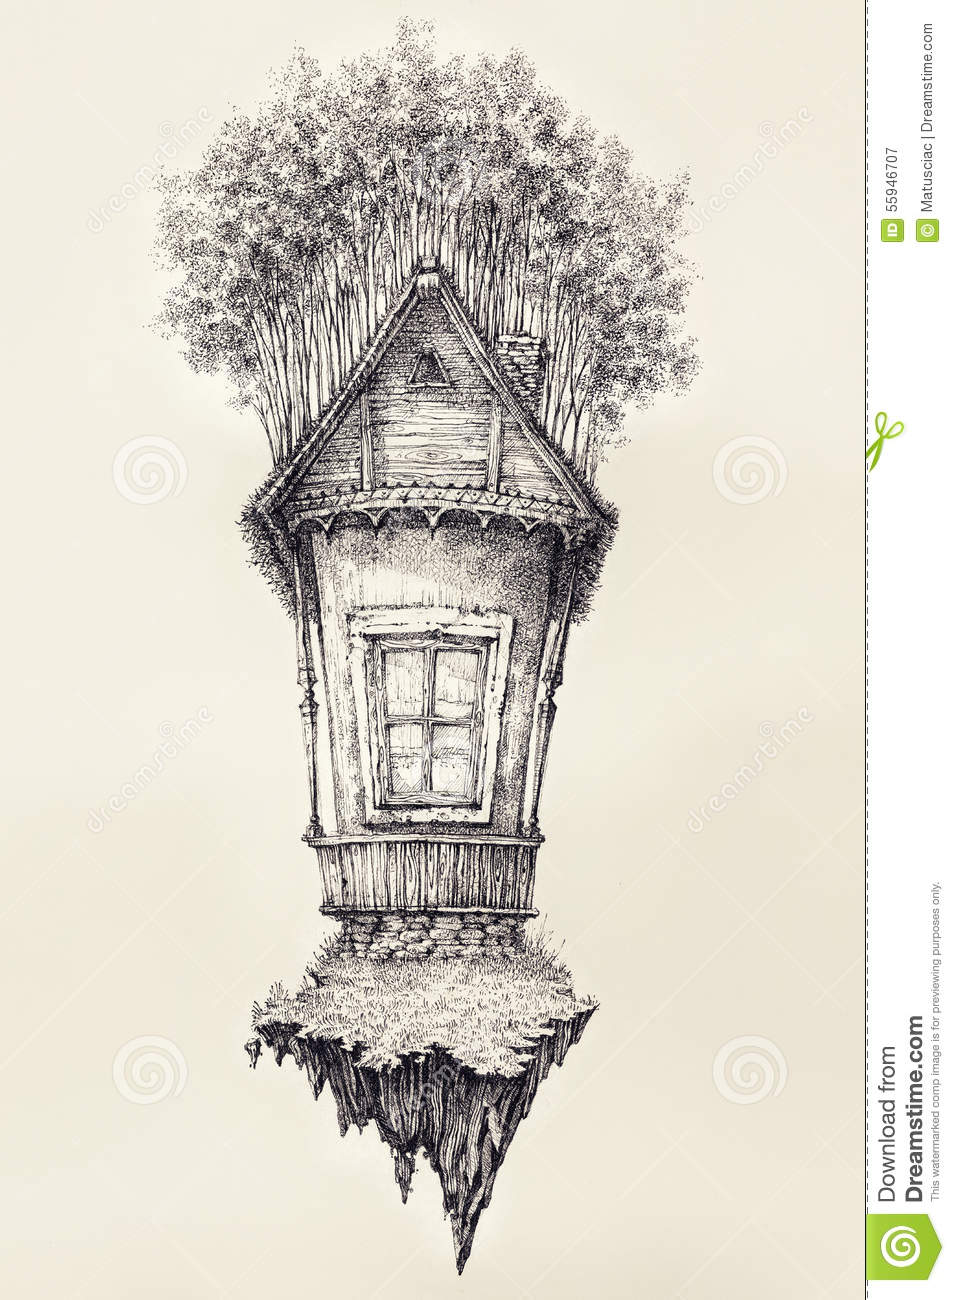 Royalty Free Stock Photography Surreal Hand Drawing Of A